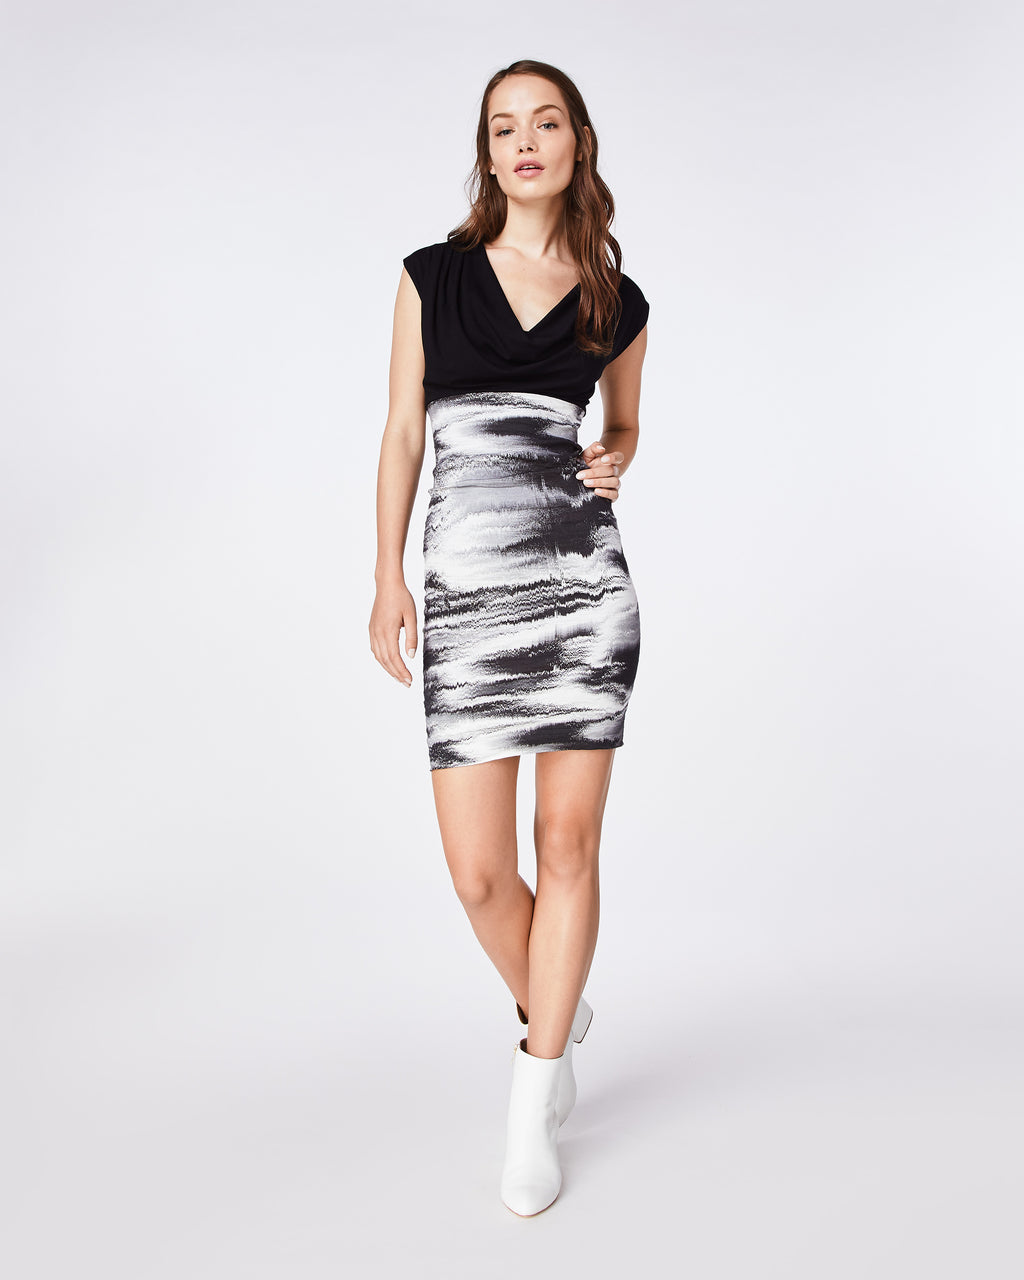 BT10119 - DISTORTED FOG COMBO DRESS - dresses - short - THIS FITTED V-NECK DRESS IS A FLATTERING FIT. IT IS FITTED STARTING AT THE WAIST DOWN. PAIR WITH A STRAPPY BLACK SANDAL FOR A DRESSED UP LOOK.